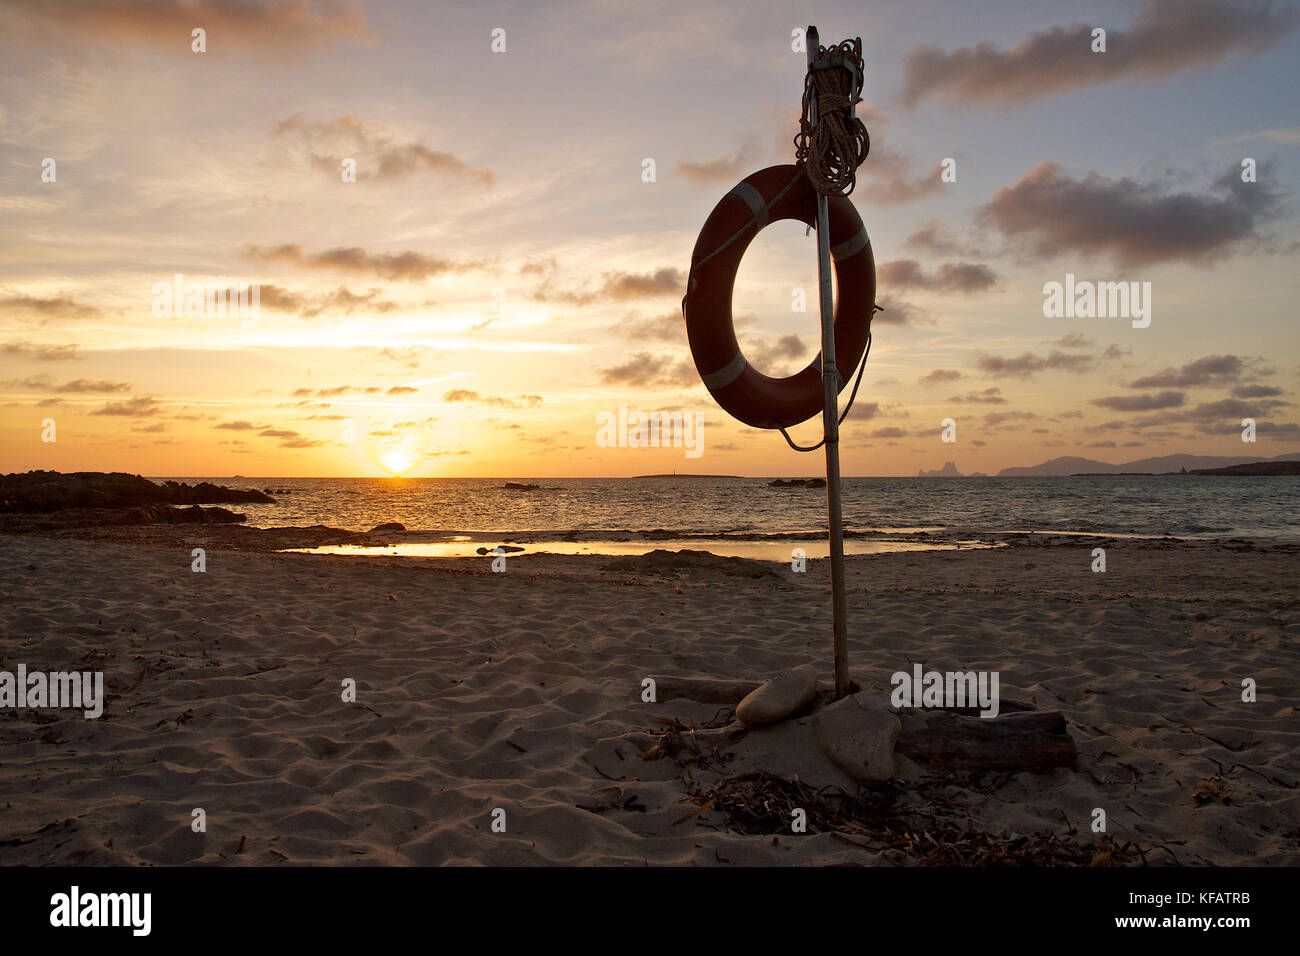 Lifesaver at sunset at Es Pas beach with Espalmador, Es Vedrá and Ibiza islands in the back at Ses Salines - Stock Image